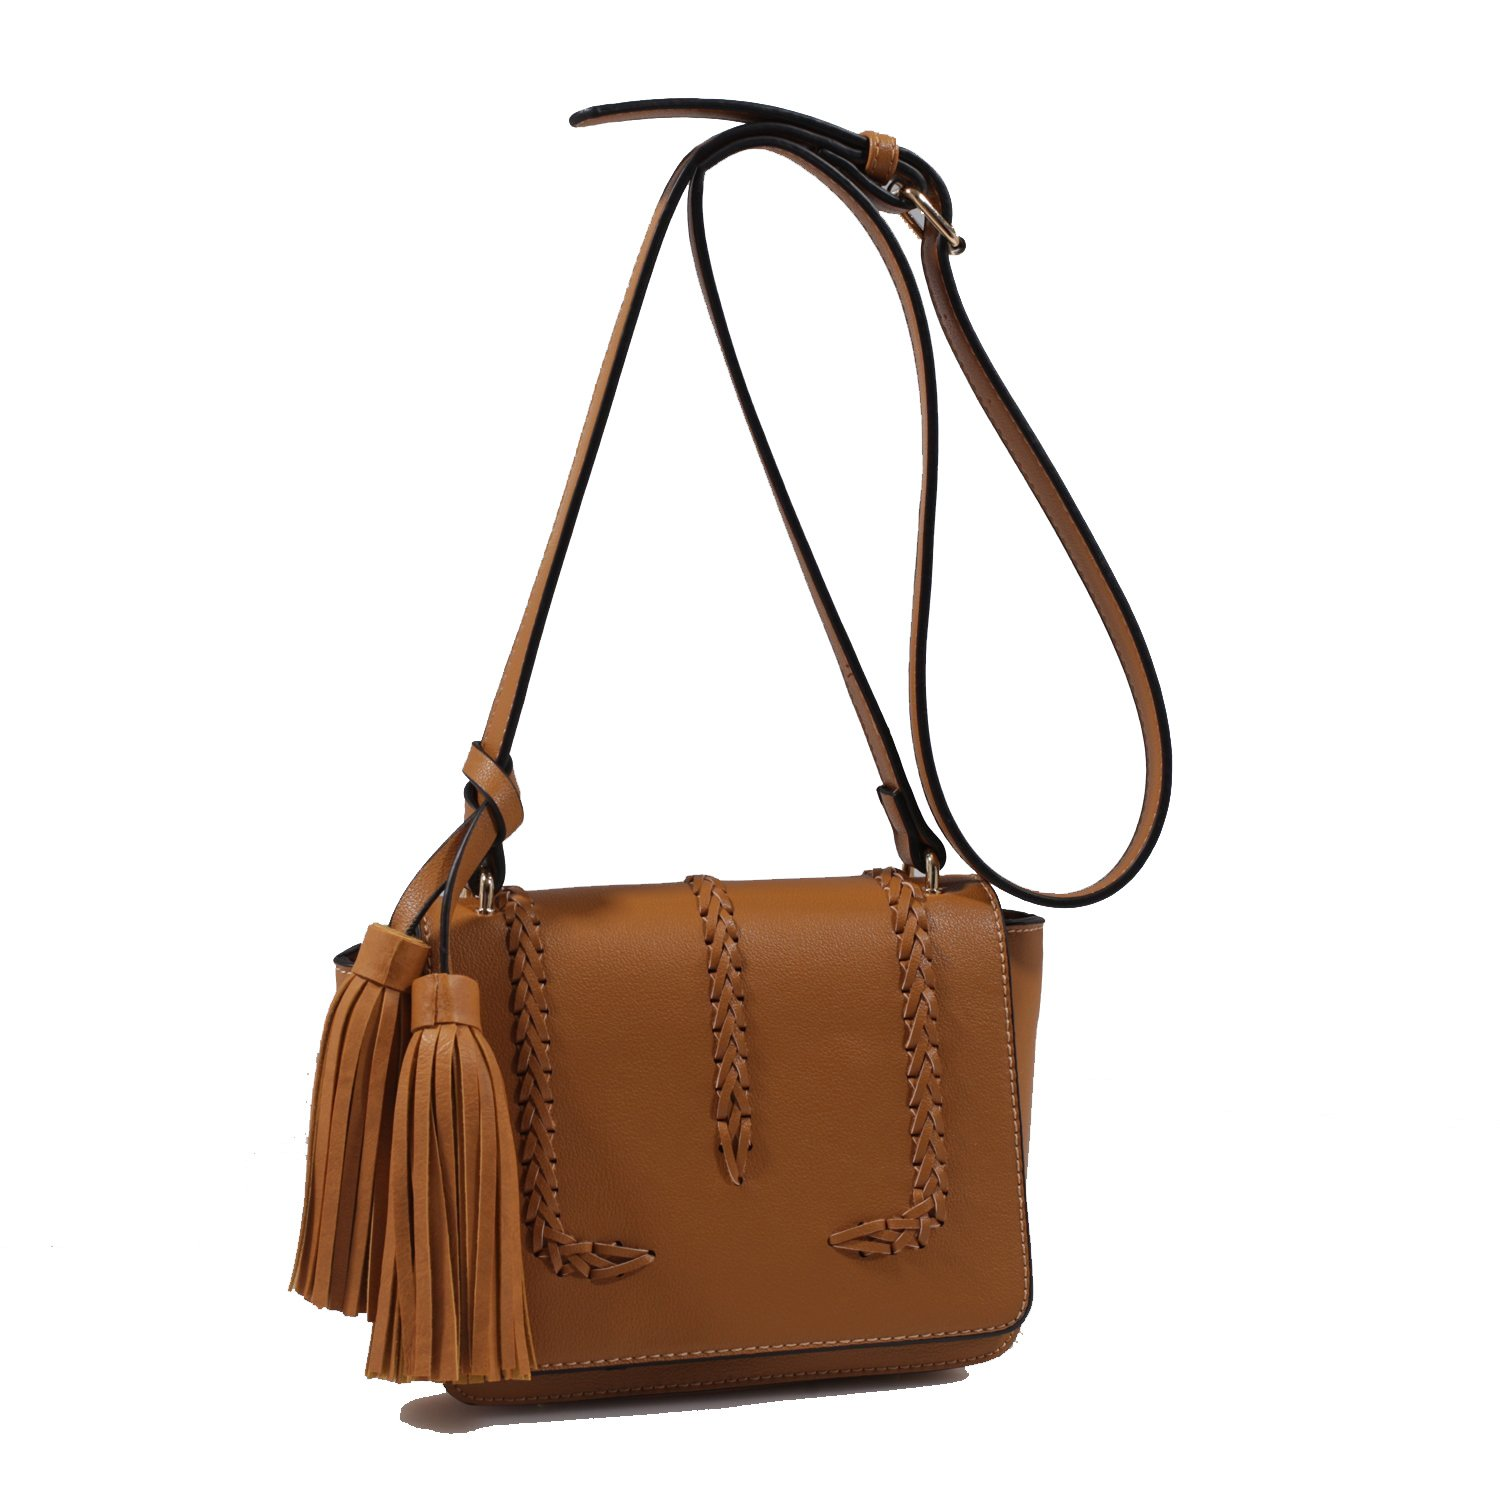 876485bc8a45 Isabelle Designer Inspired Whipstitched Faux Leather Crossbody Bags -  Black  Handbags  Amazon.com